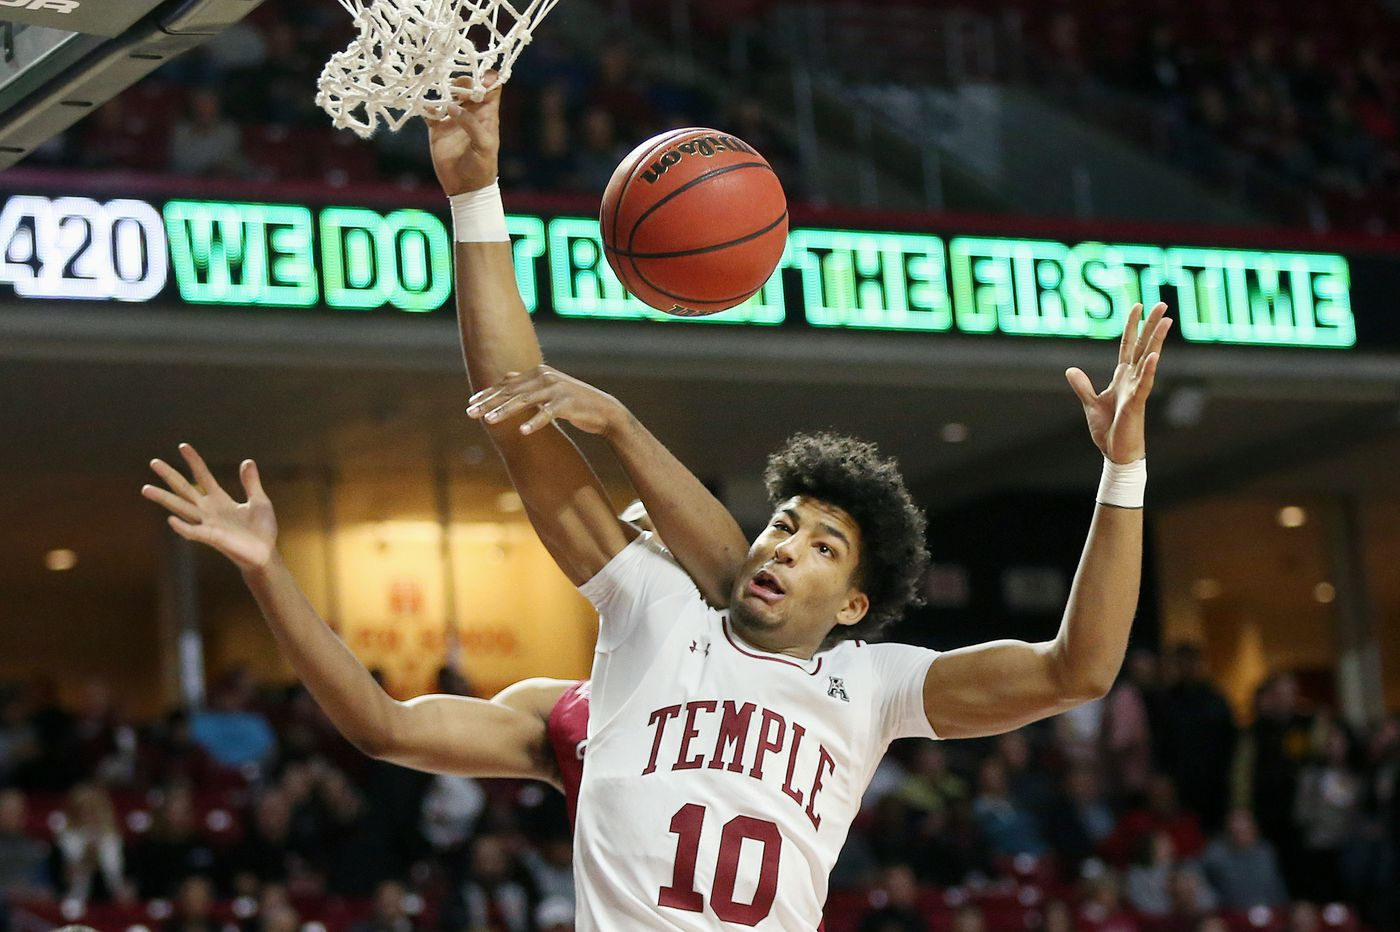 Temple falls to SMU on the road, 68-52